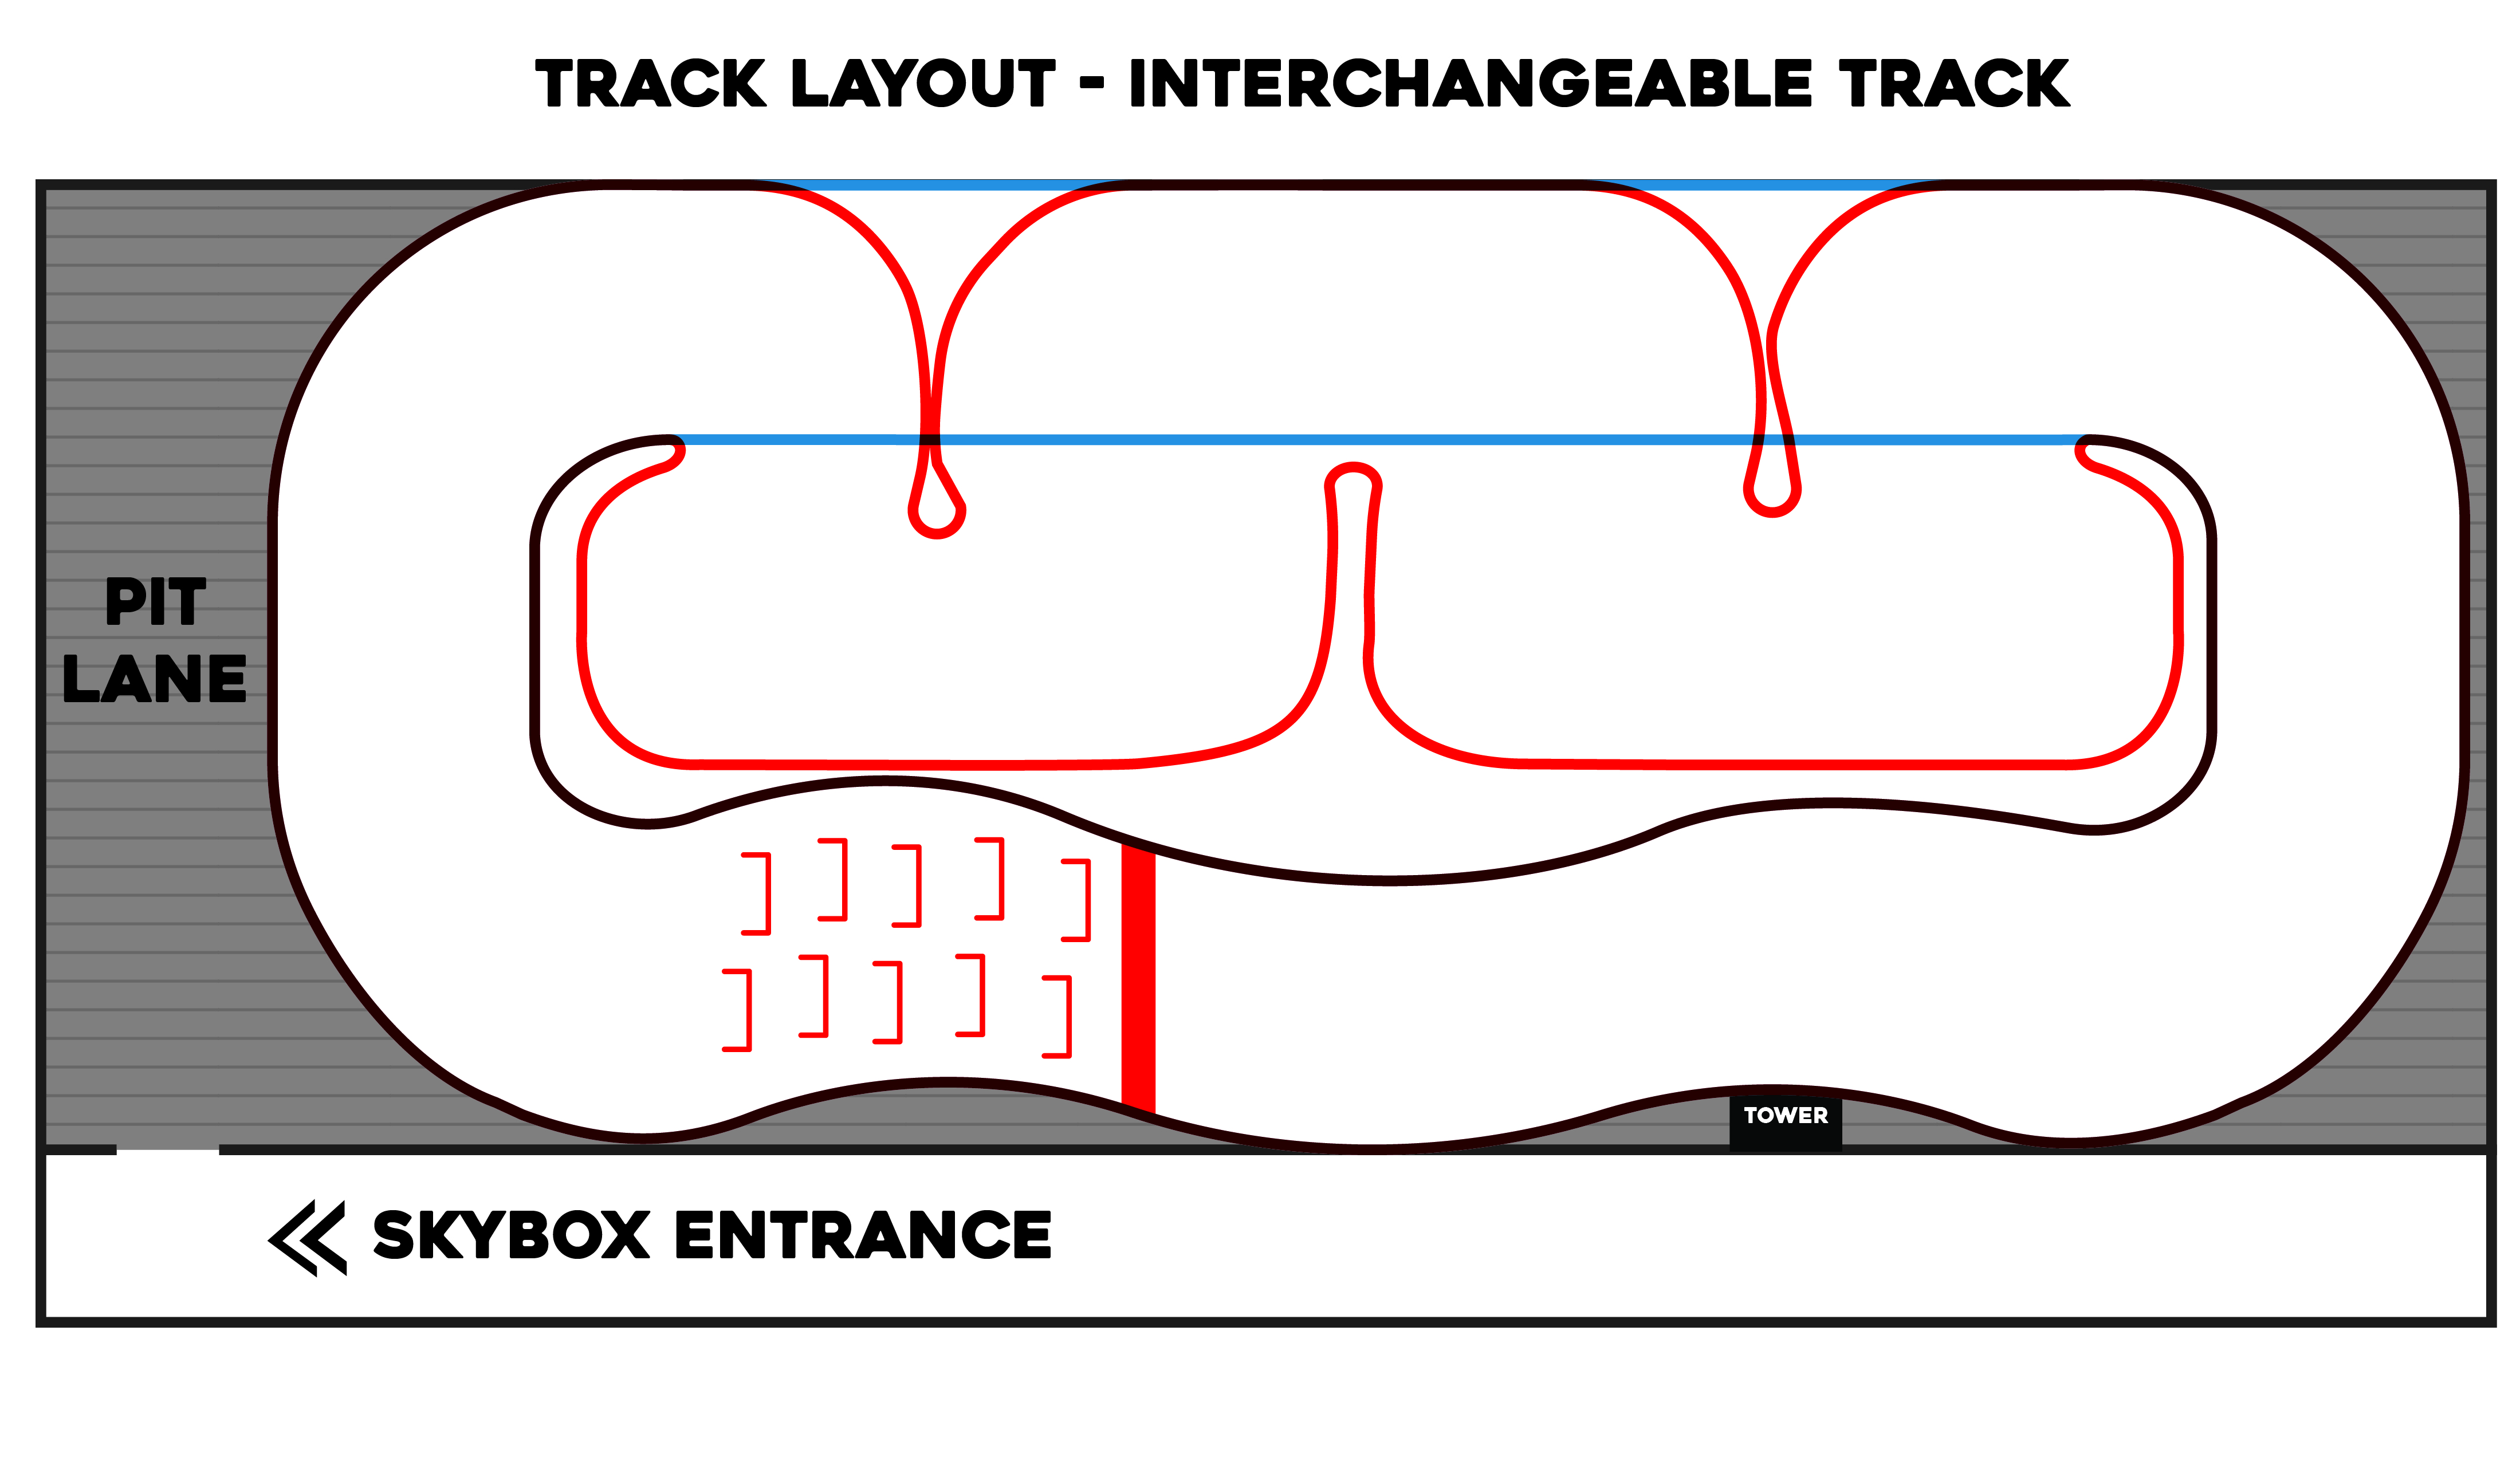 Interchangeable track layout